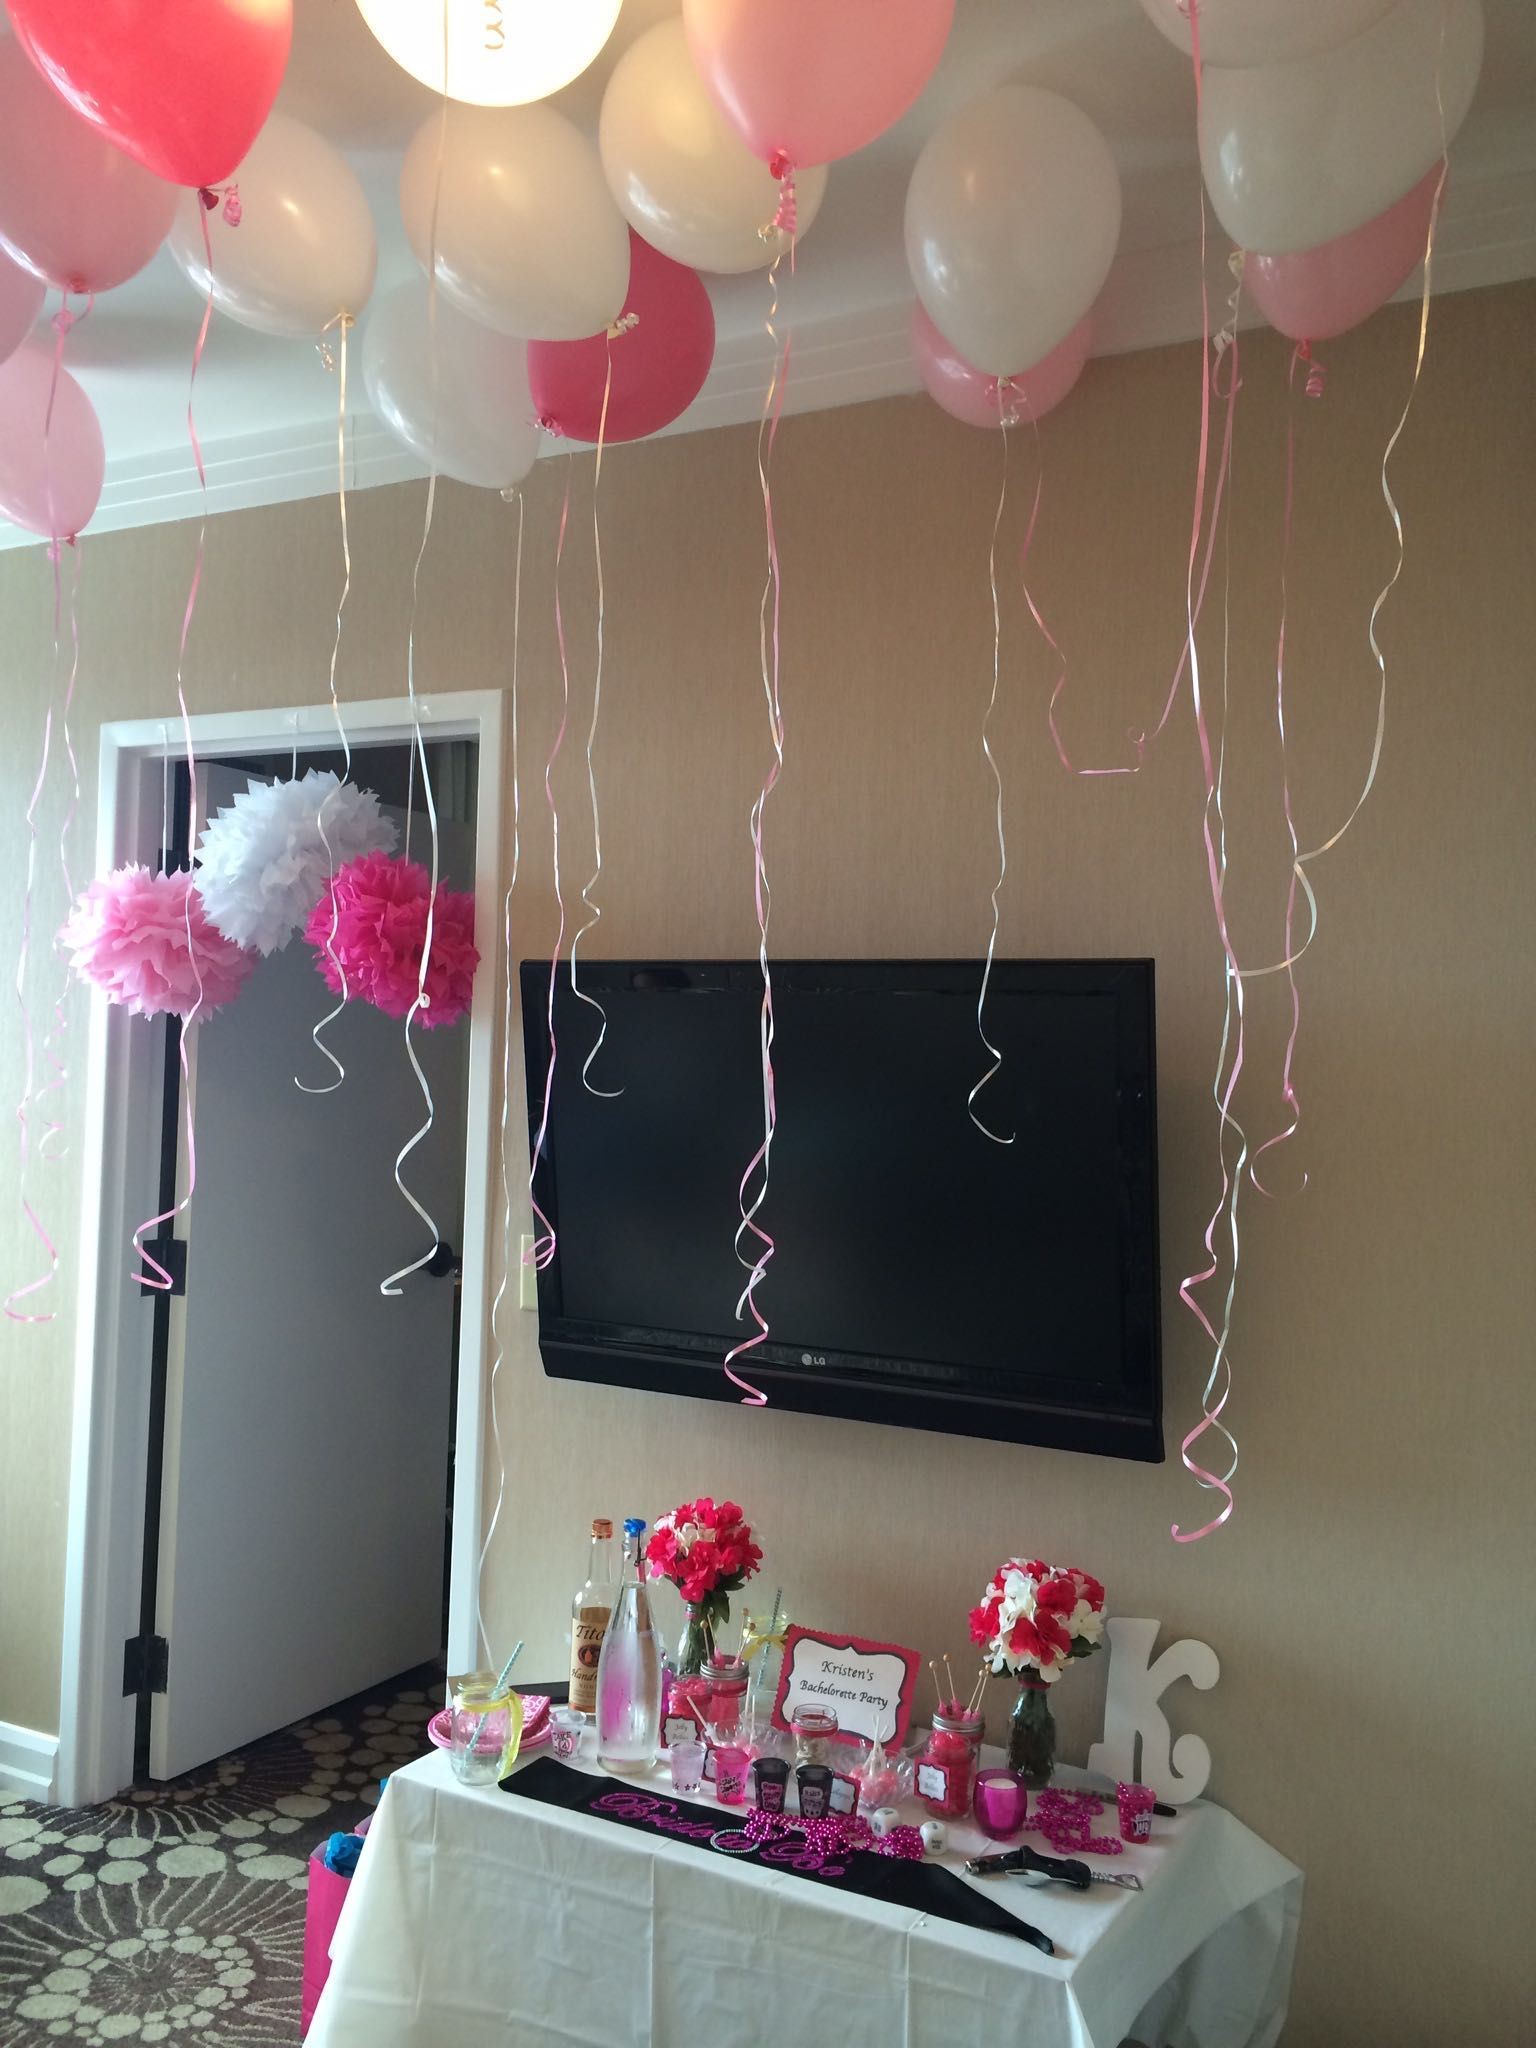 bachelorette decorations. hutton hotel in nashville, tennessee